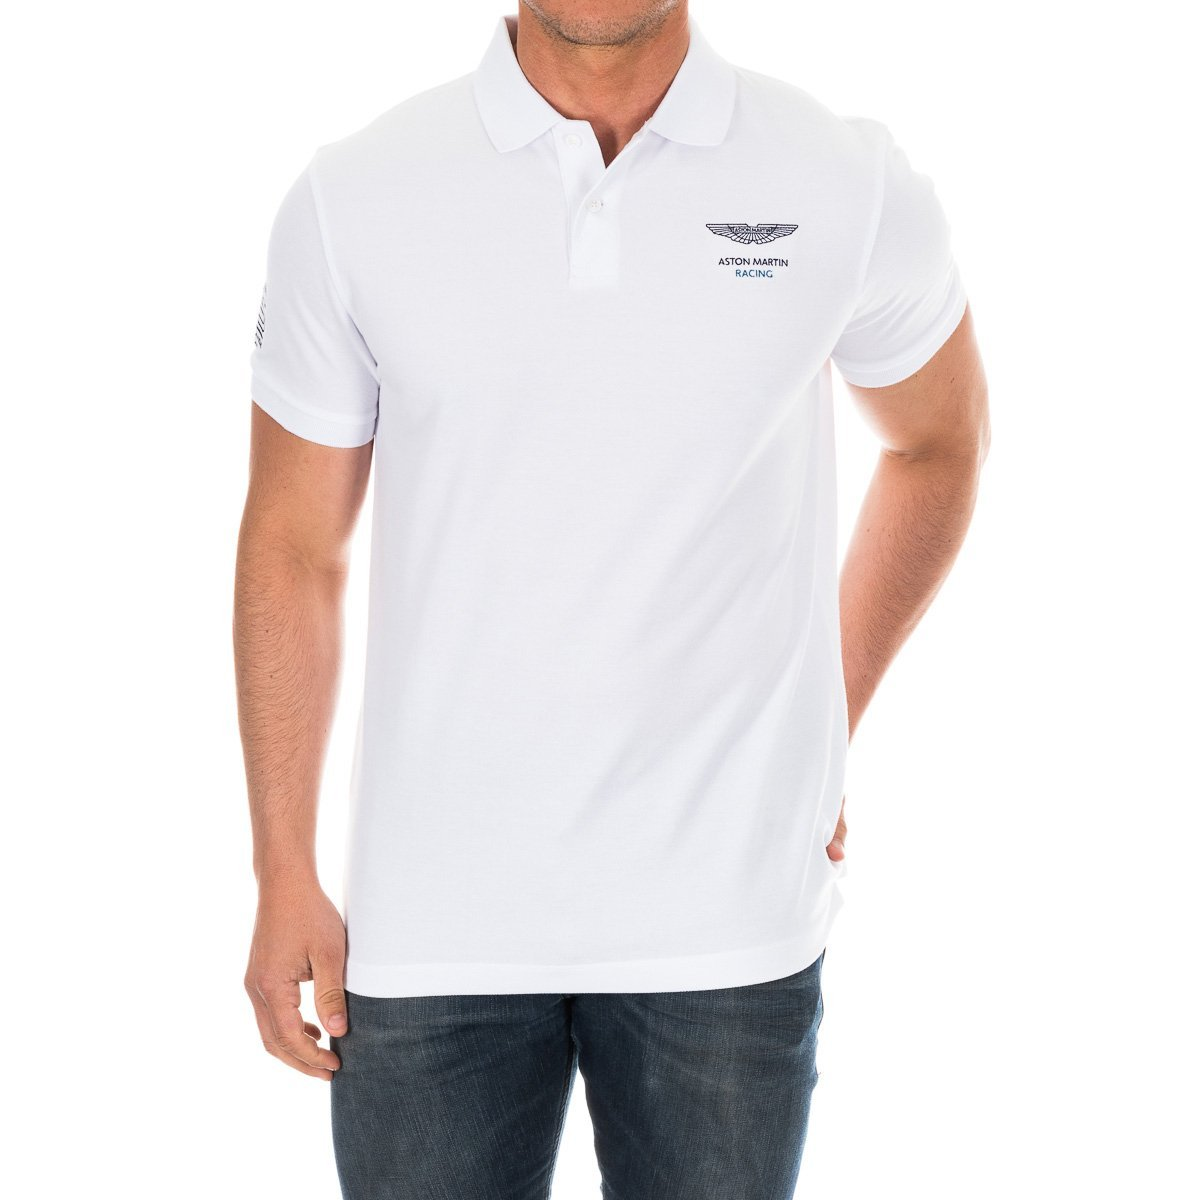 Hackett London AMR BK DBL STR Polo, Blanco (White 800), S para ...